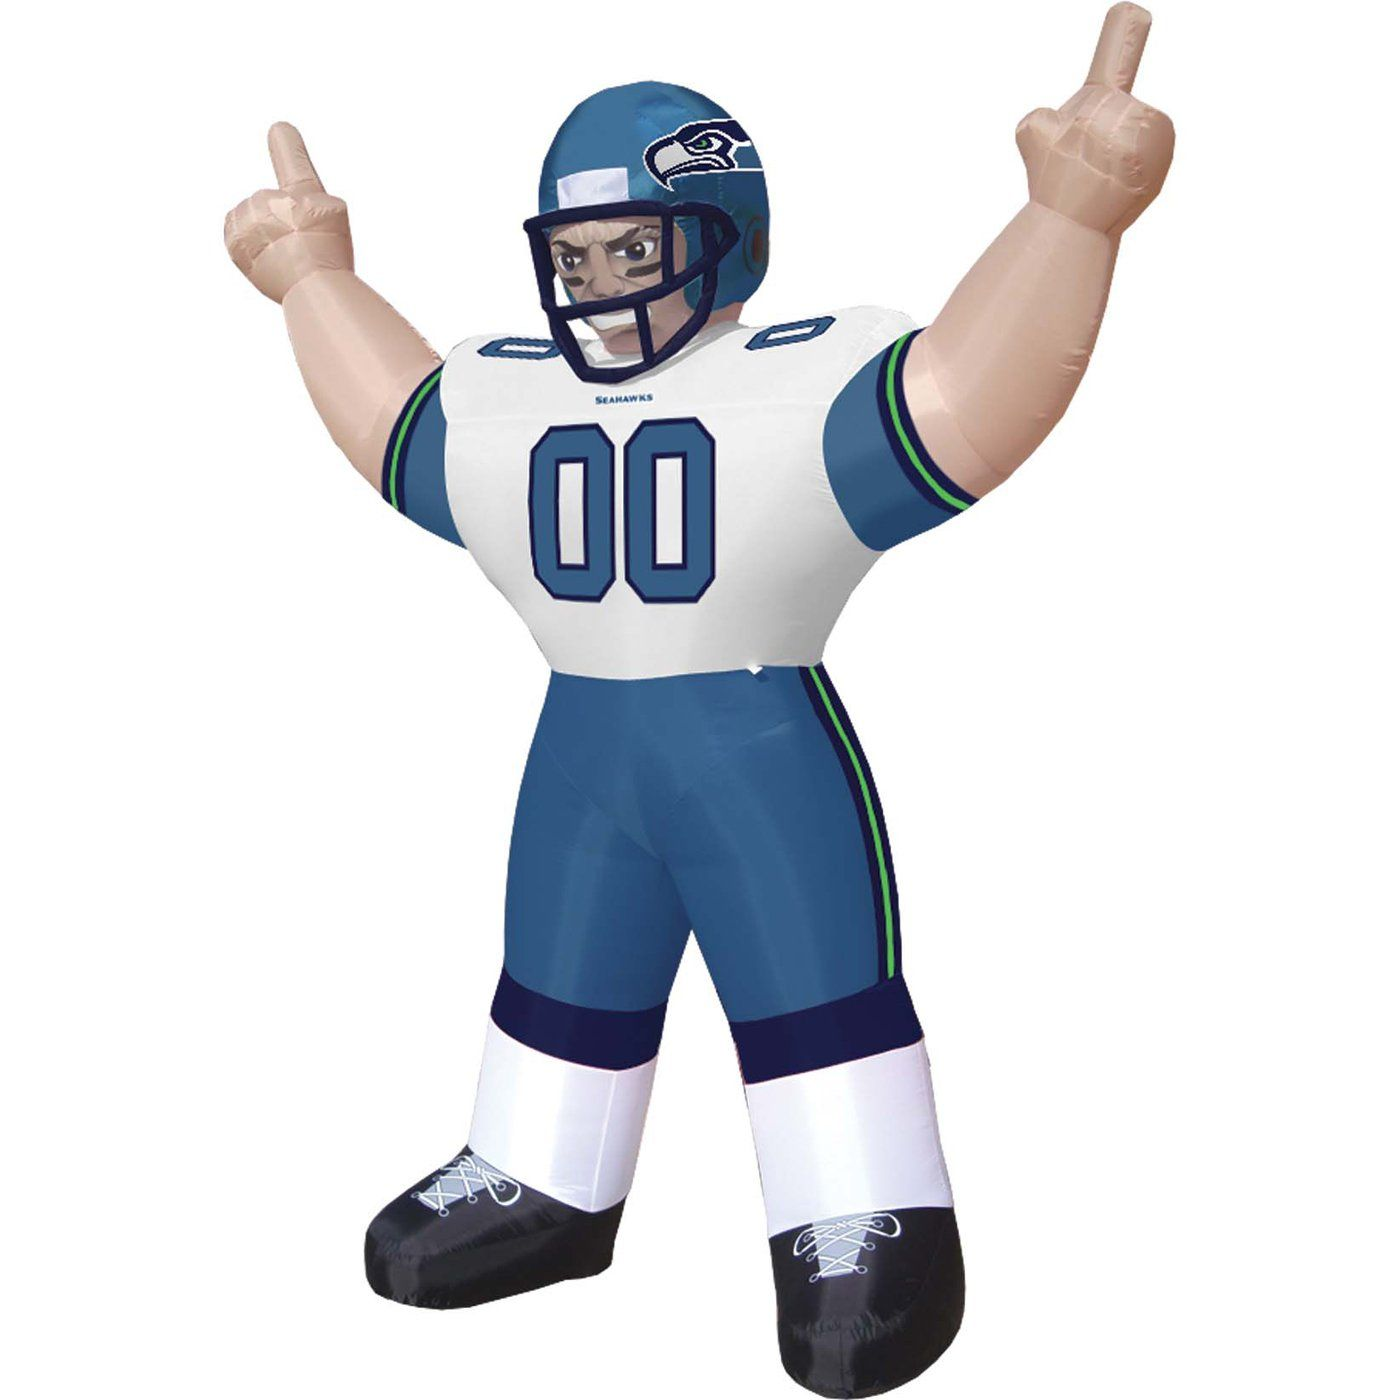 Lawn Inflatables Nfl Seattle Seahawks Jacksonville Jaguars Tailgate Accessories Football Players